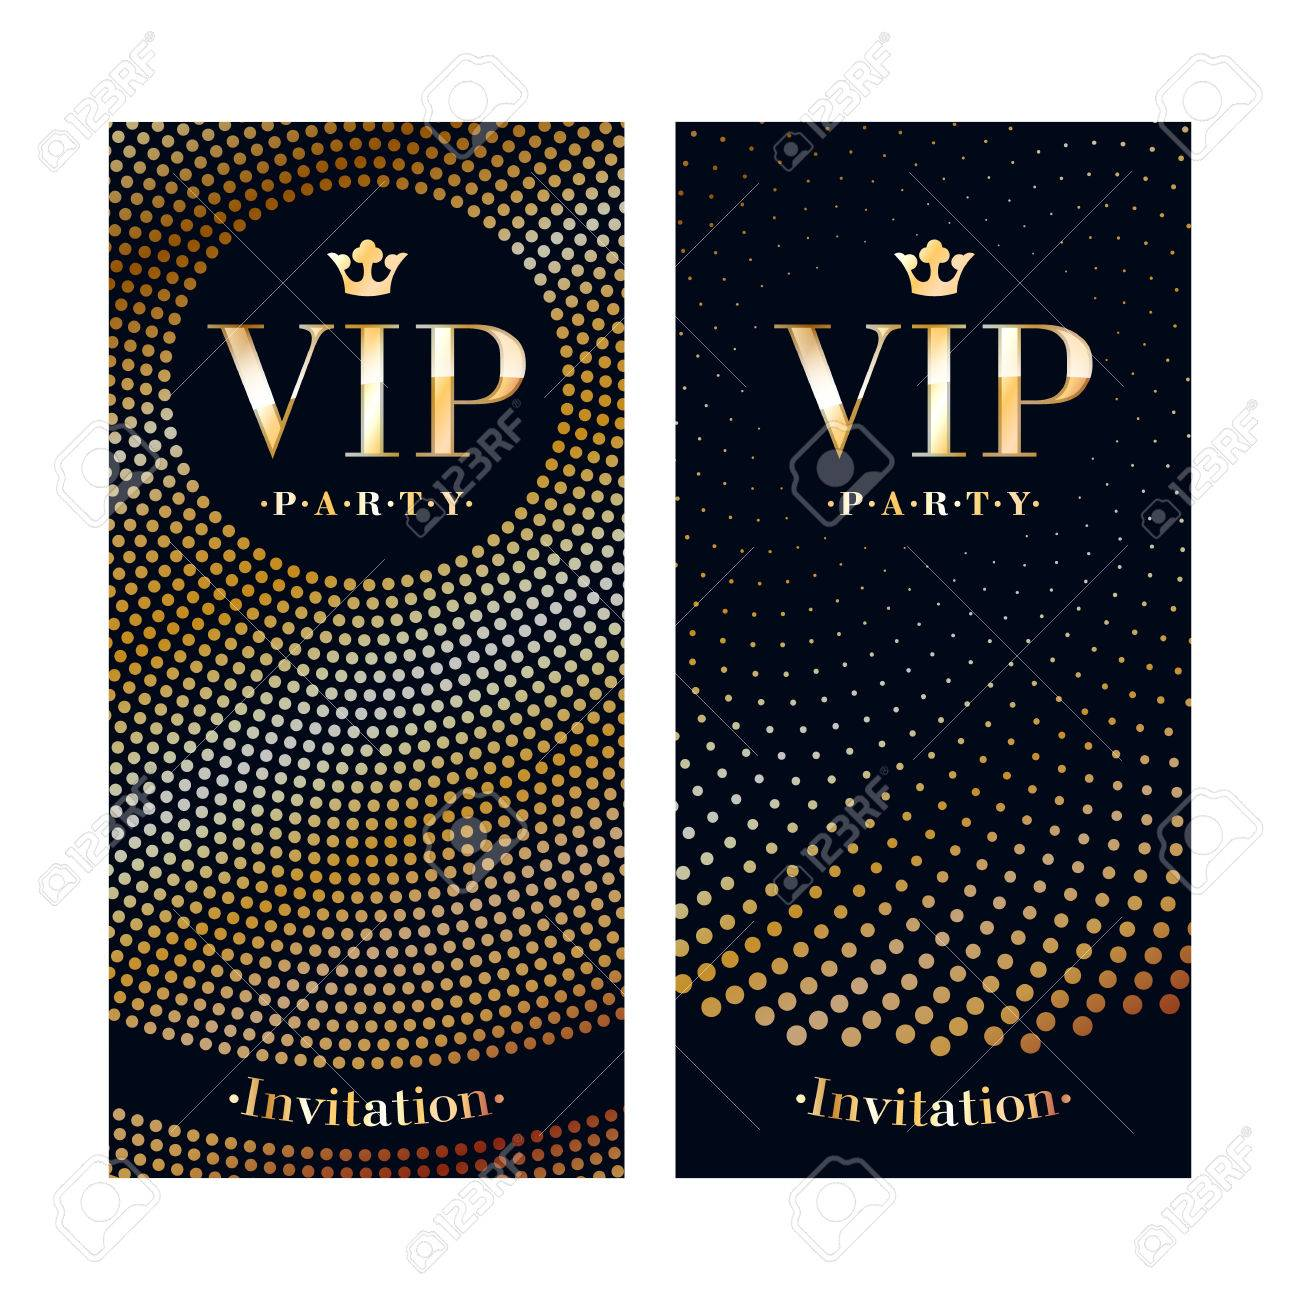 VIP club party premium invitation card poster flyer. Black and golden design template. Sequins and circles pattern decorative vector background. - 58873667